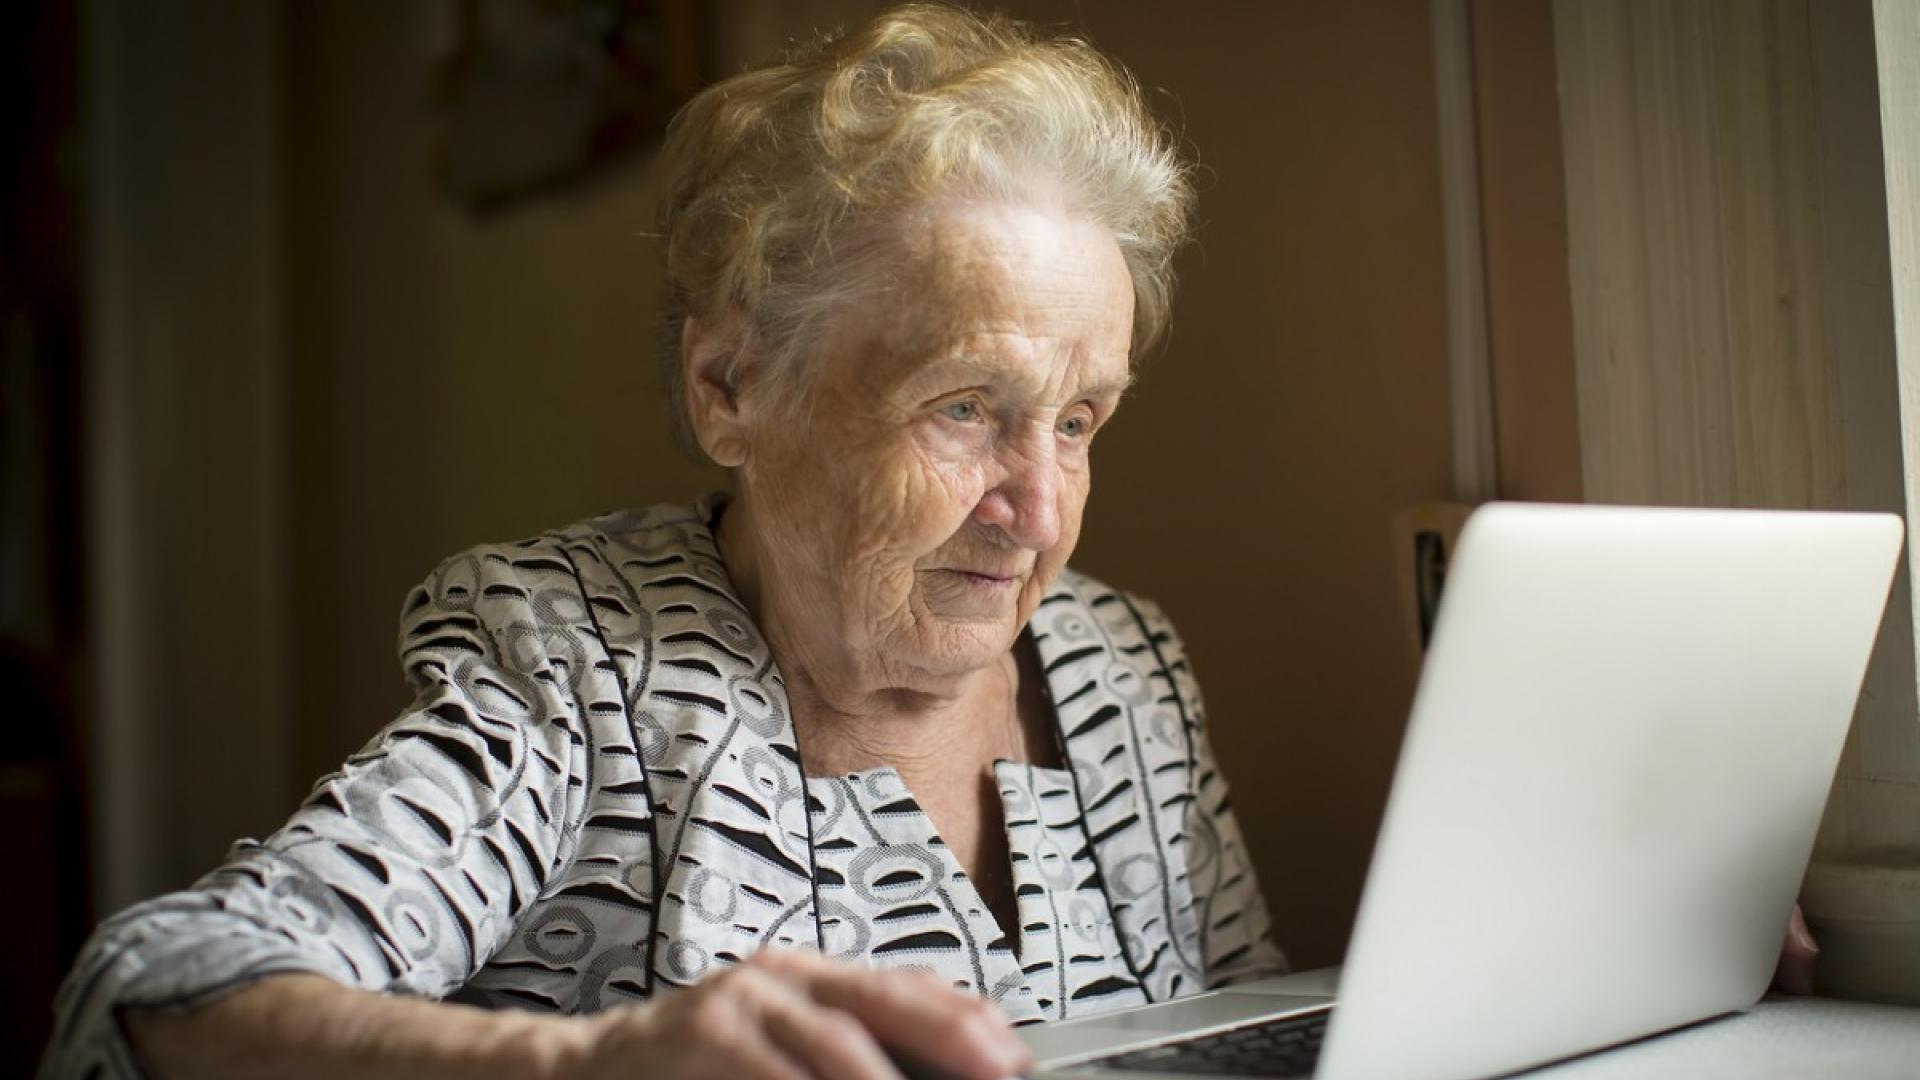 The way an elderly relative uses their computer could reveal early signs of Alzheimer's